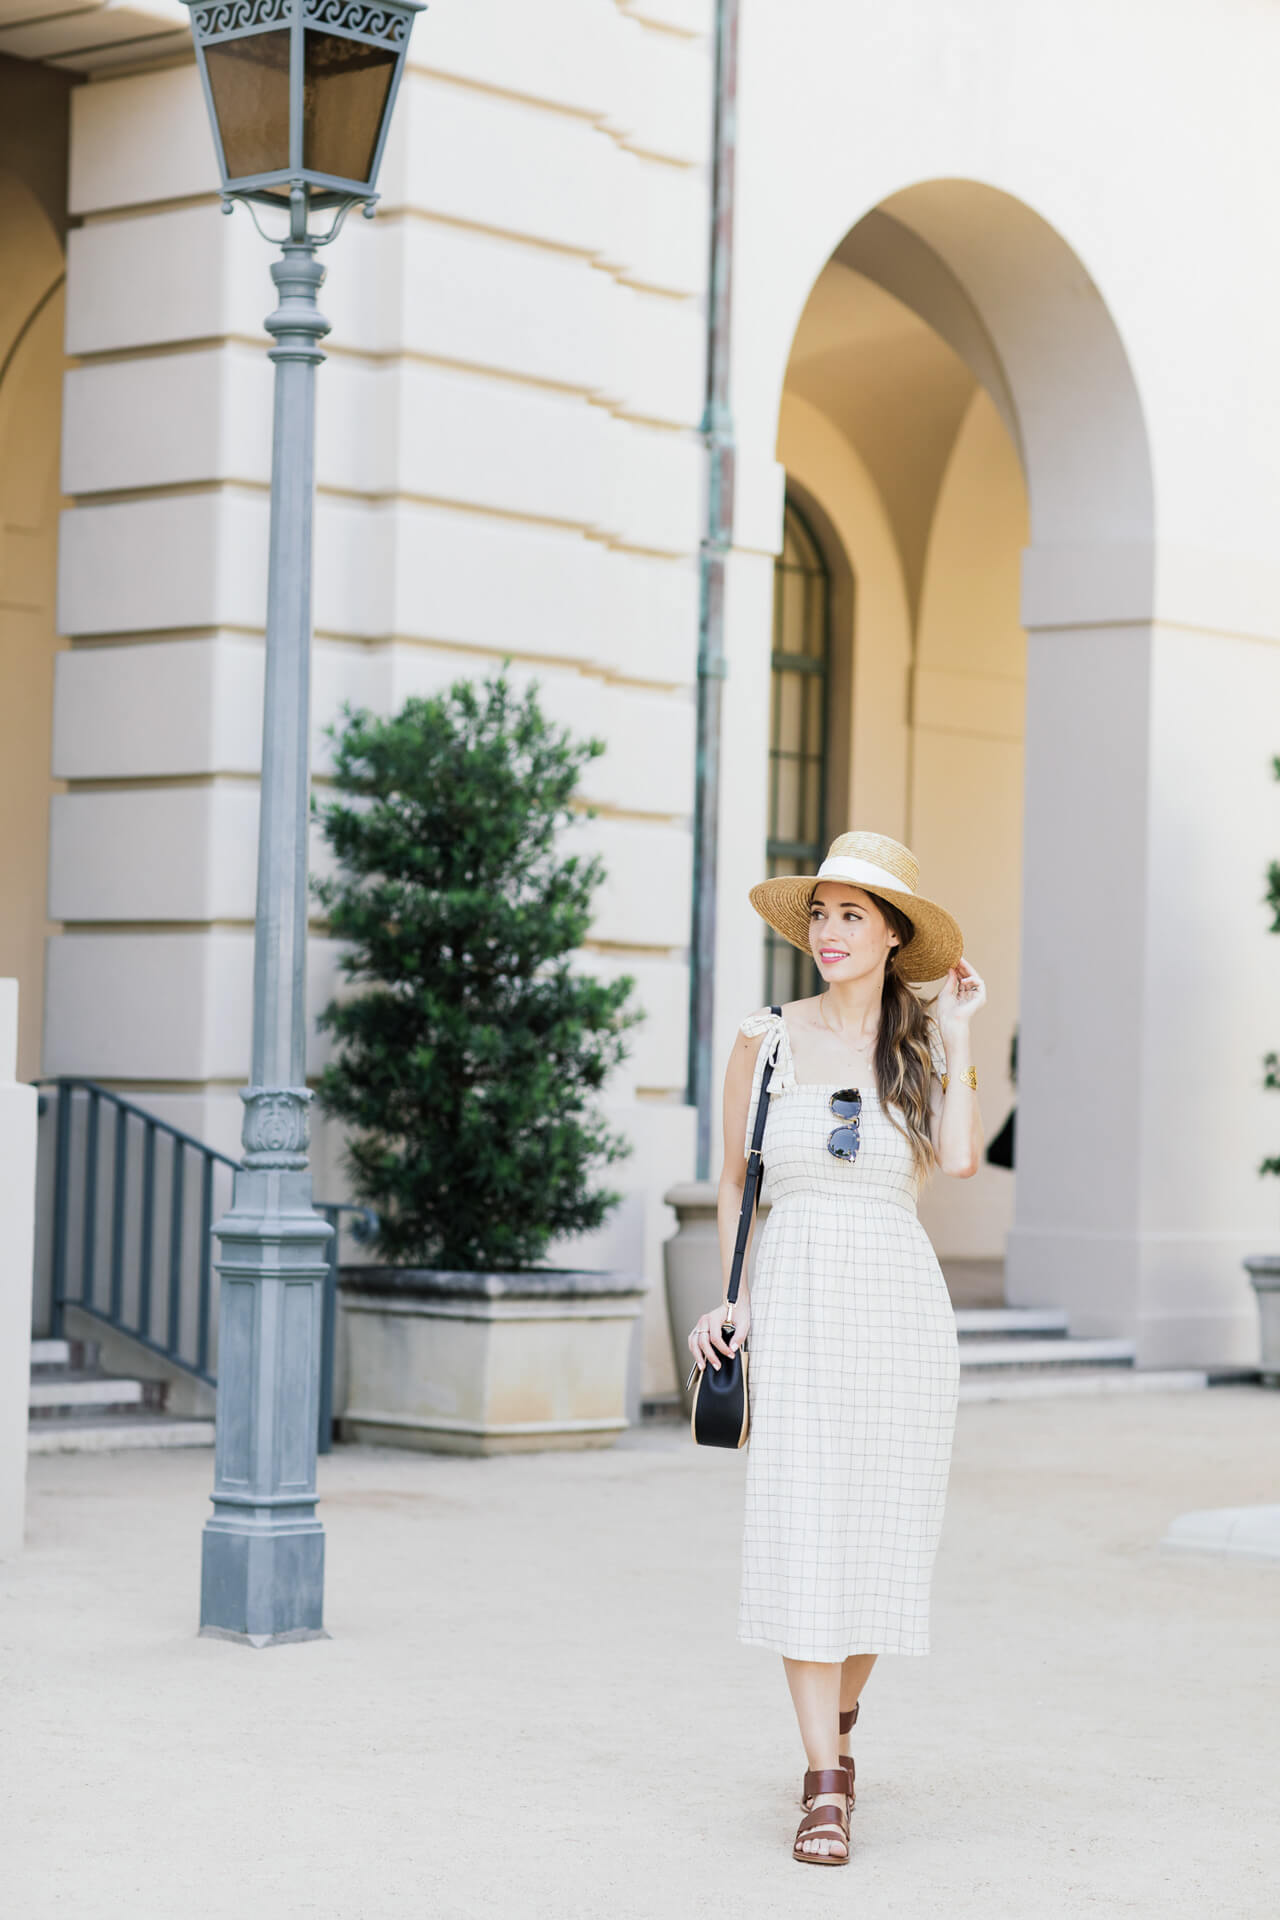 Walking around downtown with a dress that travels well- Los Angeles Blogger M Loves M @marmar